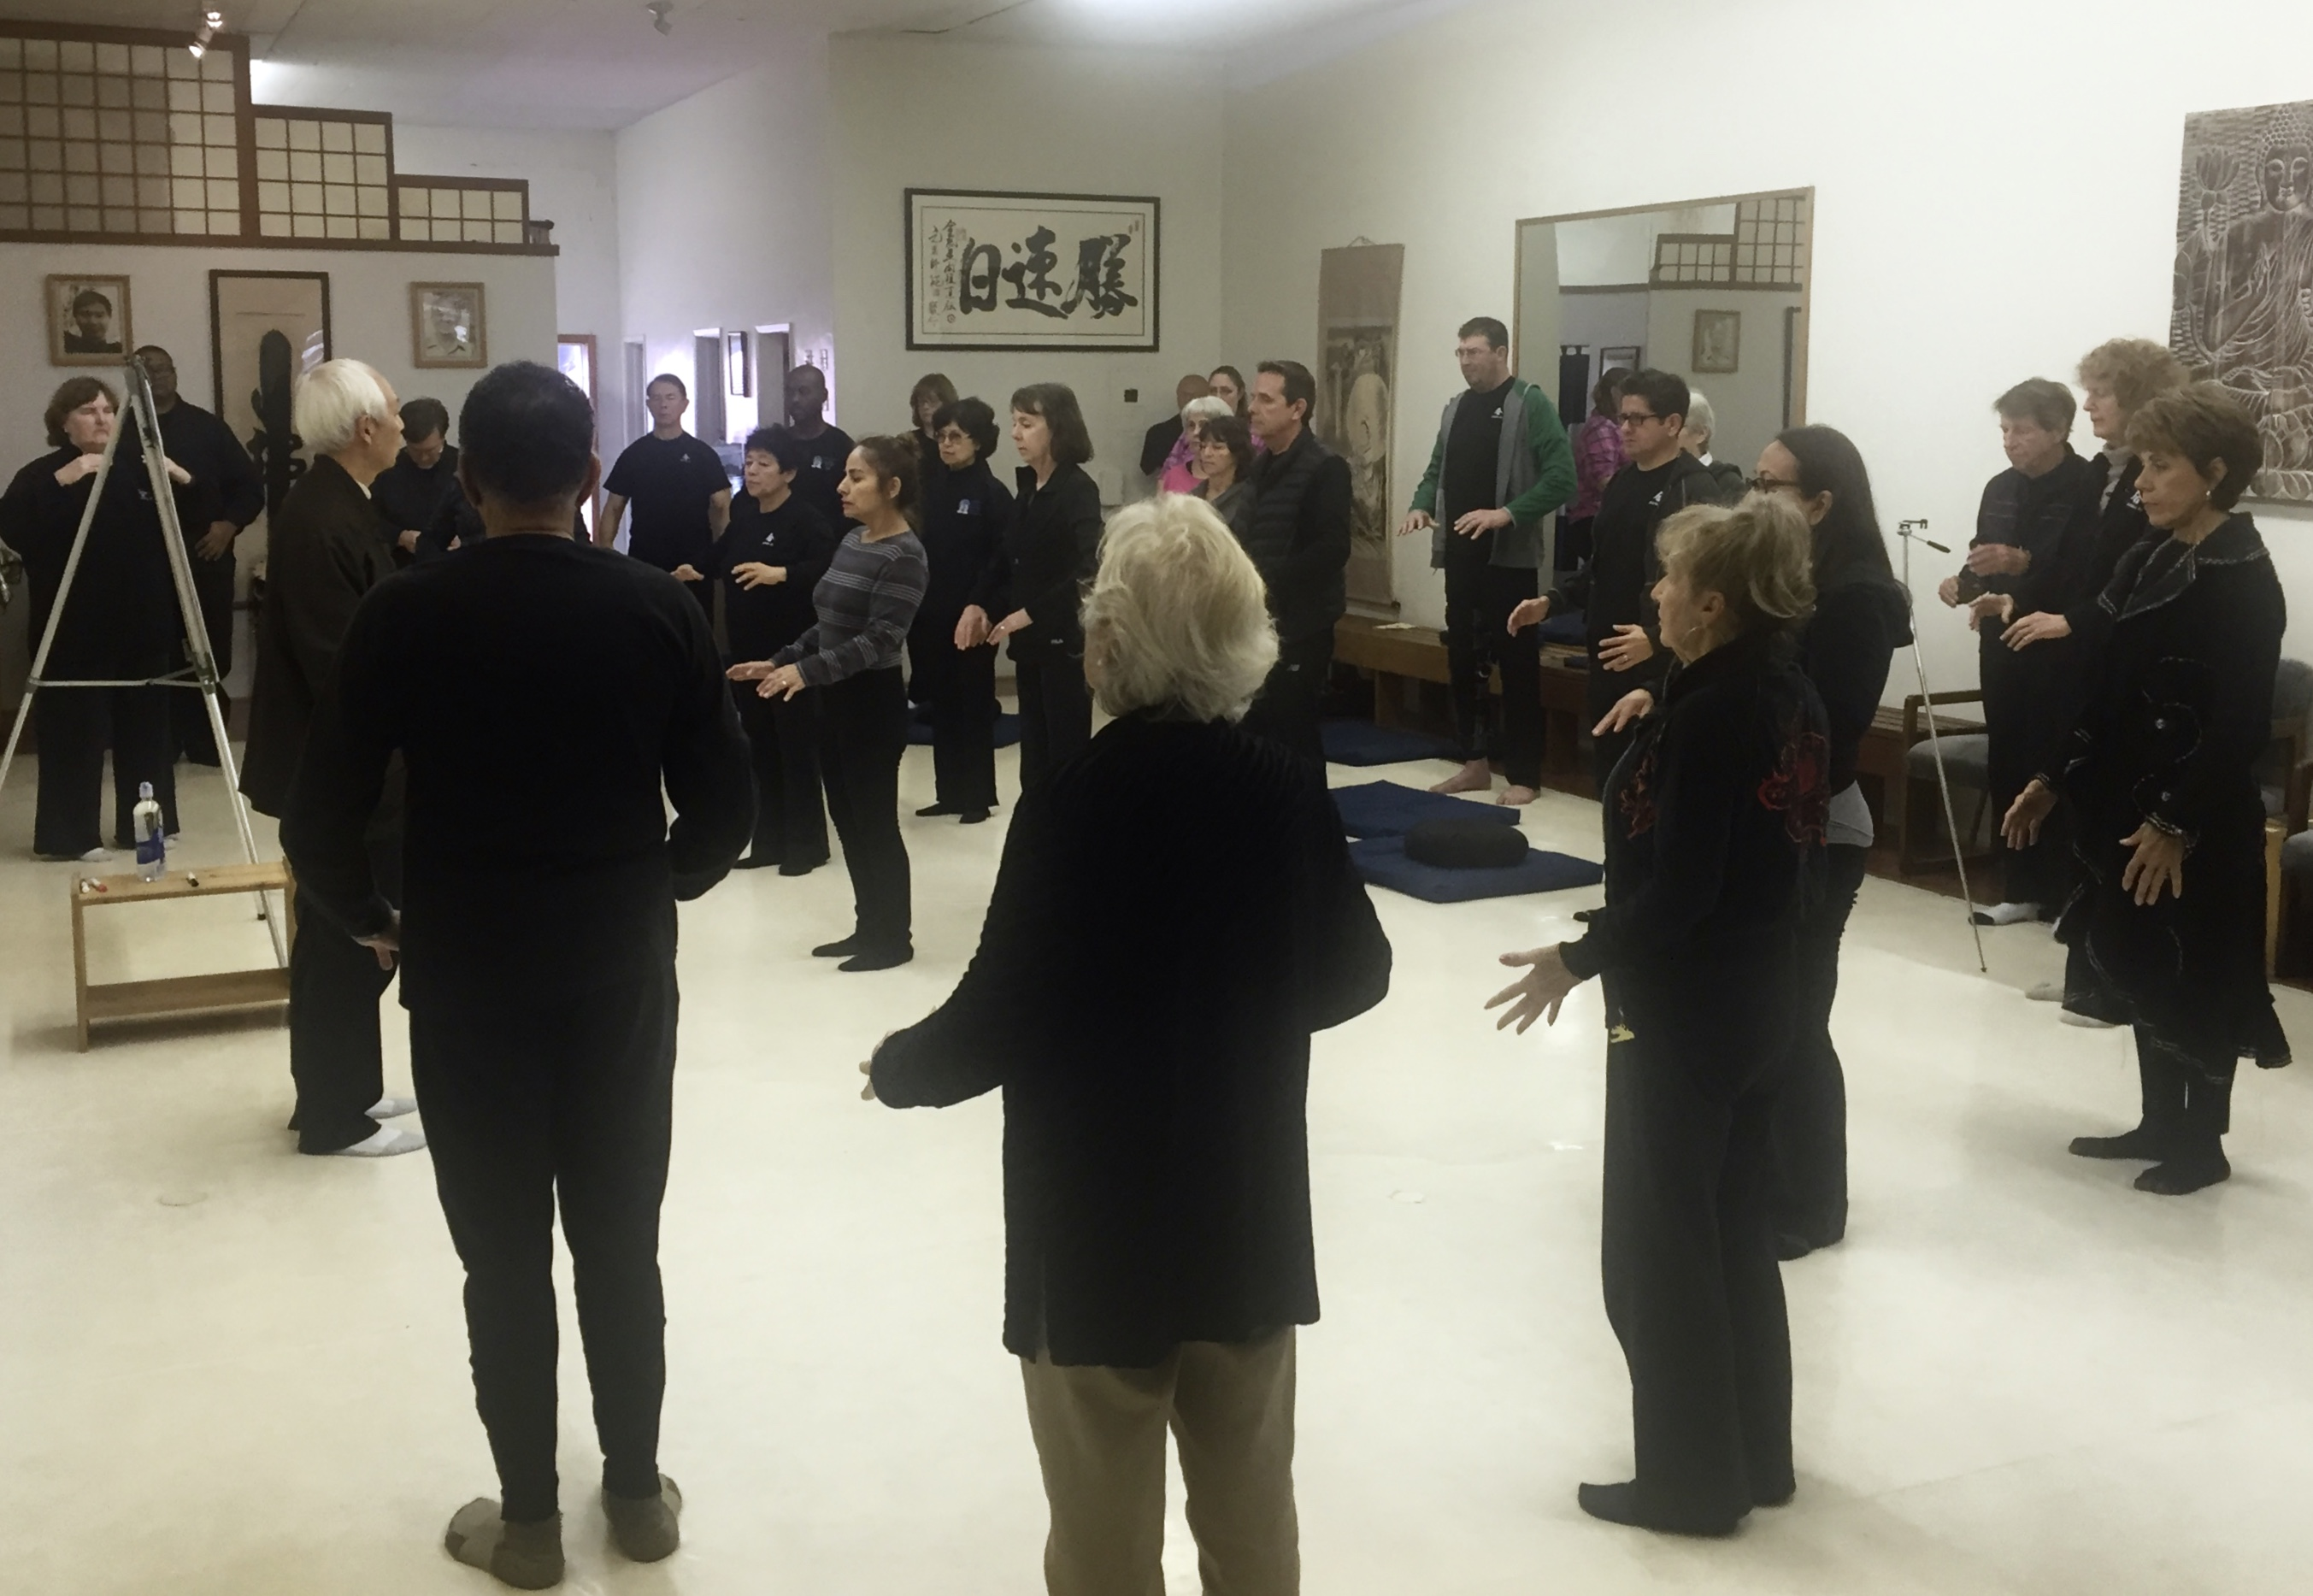 Qigong students in seminar.